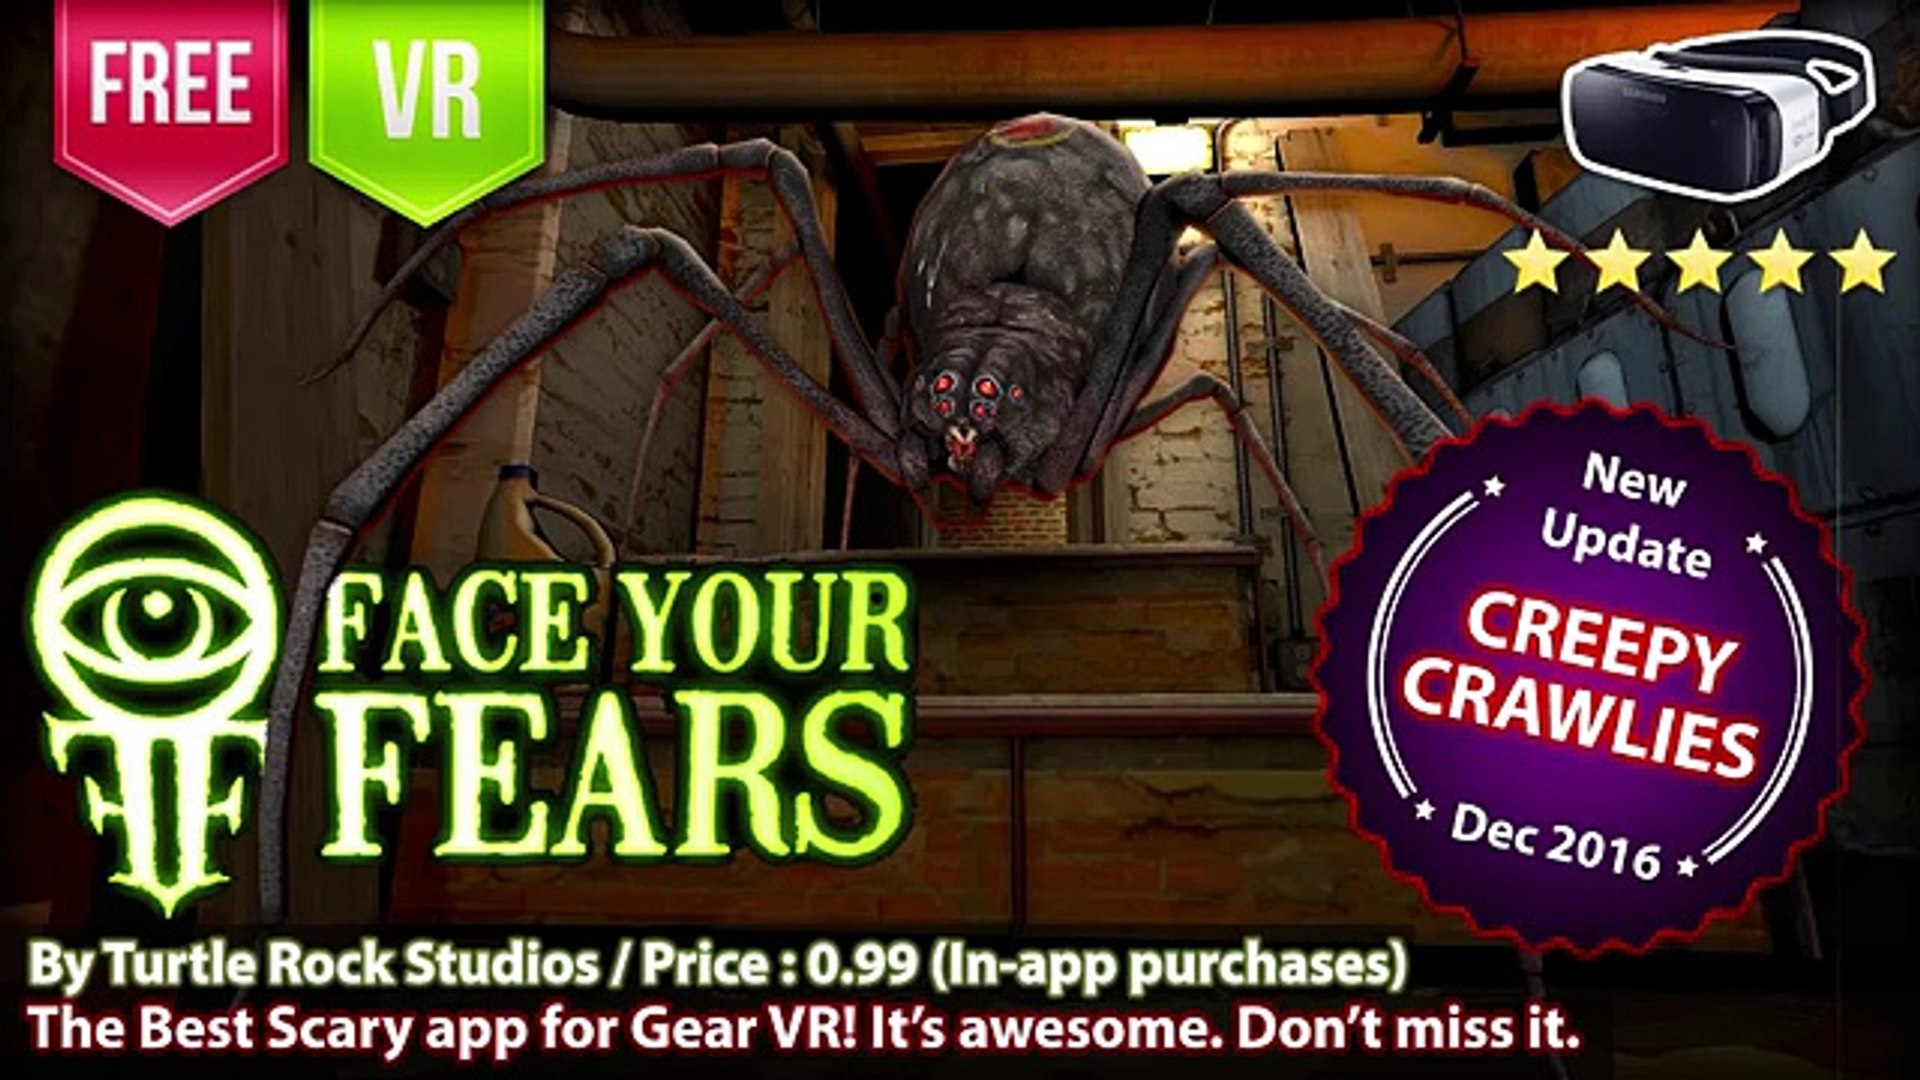 Face Your Fears Spiders Creepy Crawlies The Best Scary VR spiders for Gear  VR